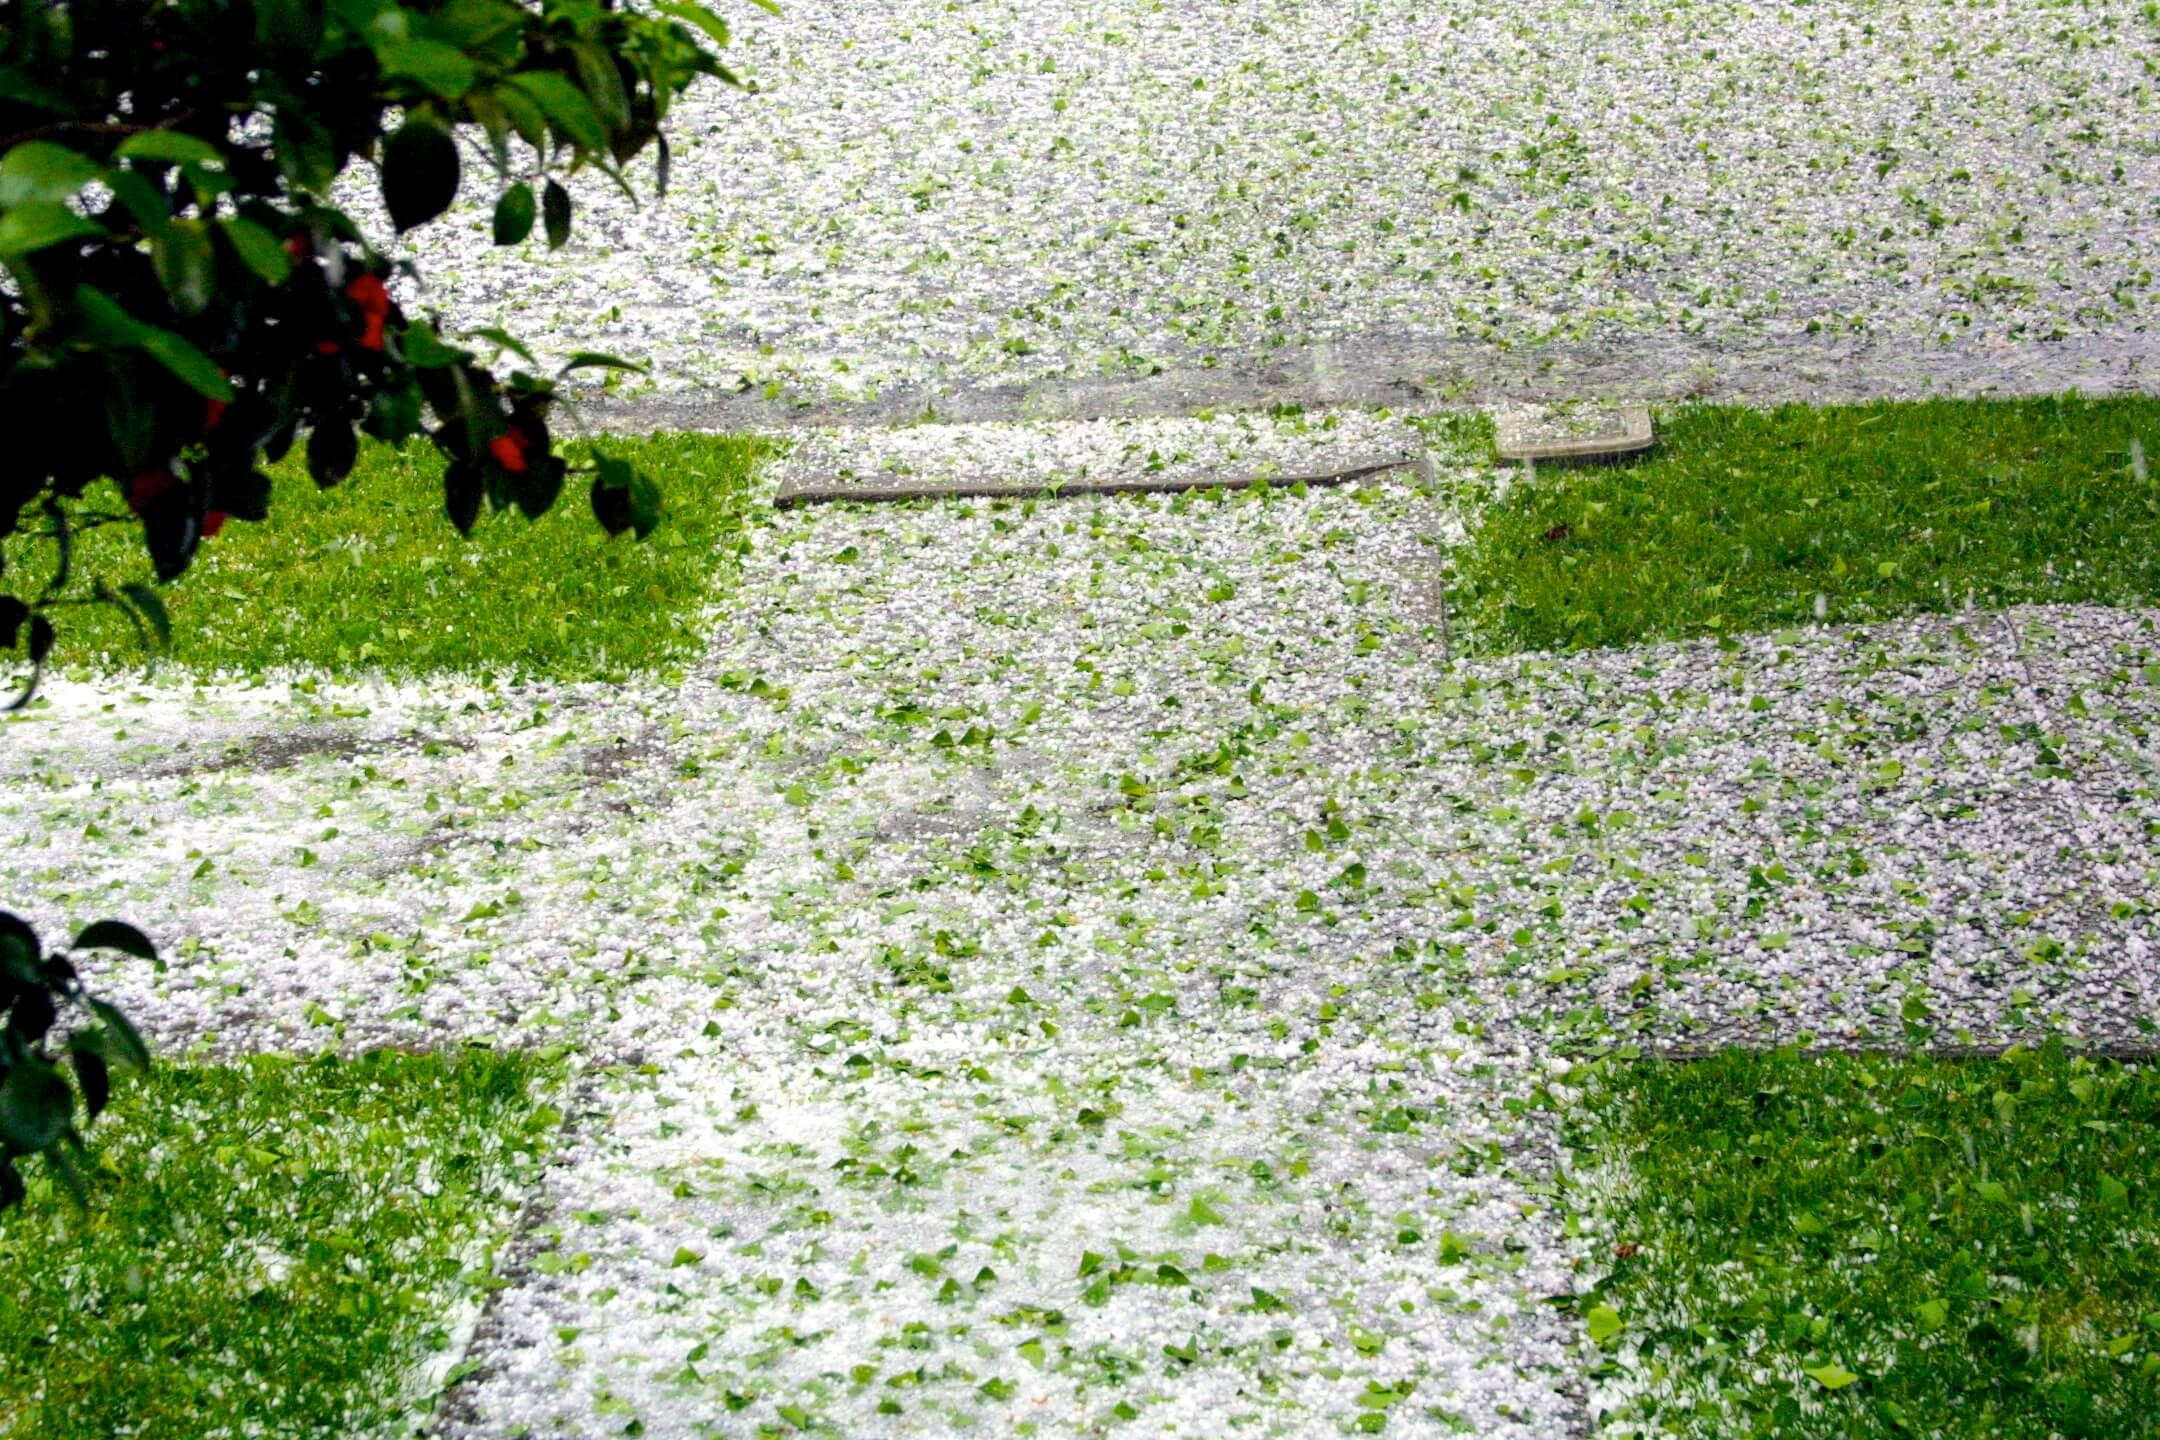 Dallas, Texas Wind and Hailstorm Property Damage Lawsuit